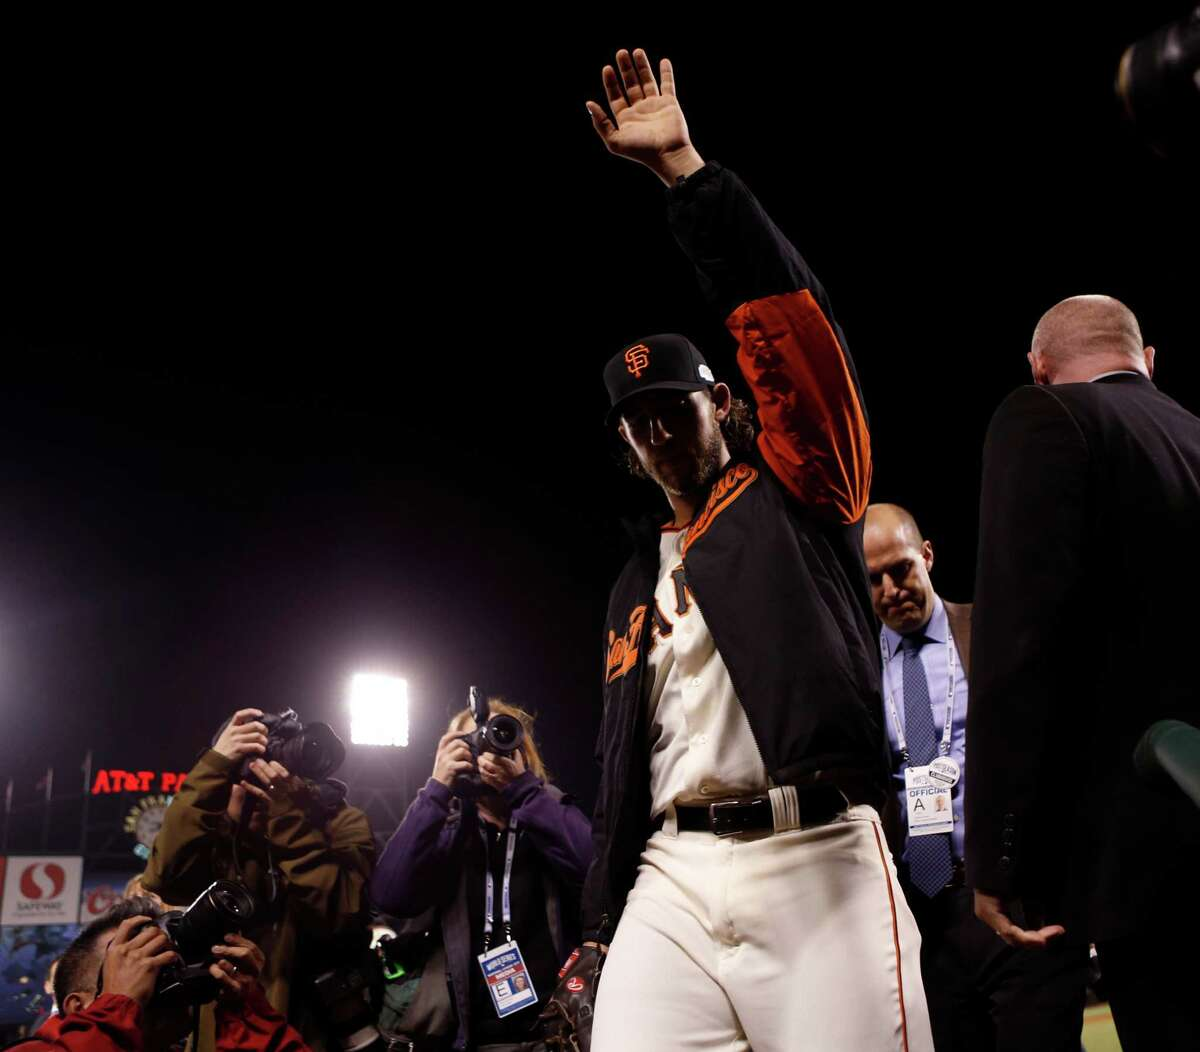 San Francisco Giants' Madison Bumgarner after 5-0 win over Kansas City Royals in Game 5 of the World Series at AT&T Park in San Francisco, Calif.. on Sunday, October 26, 2014.